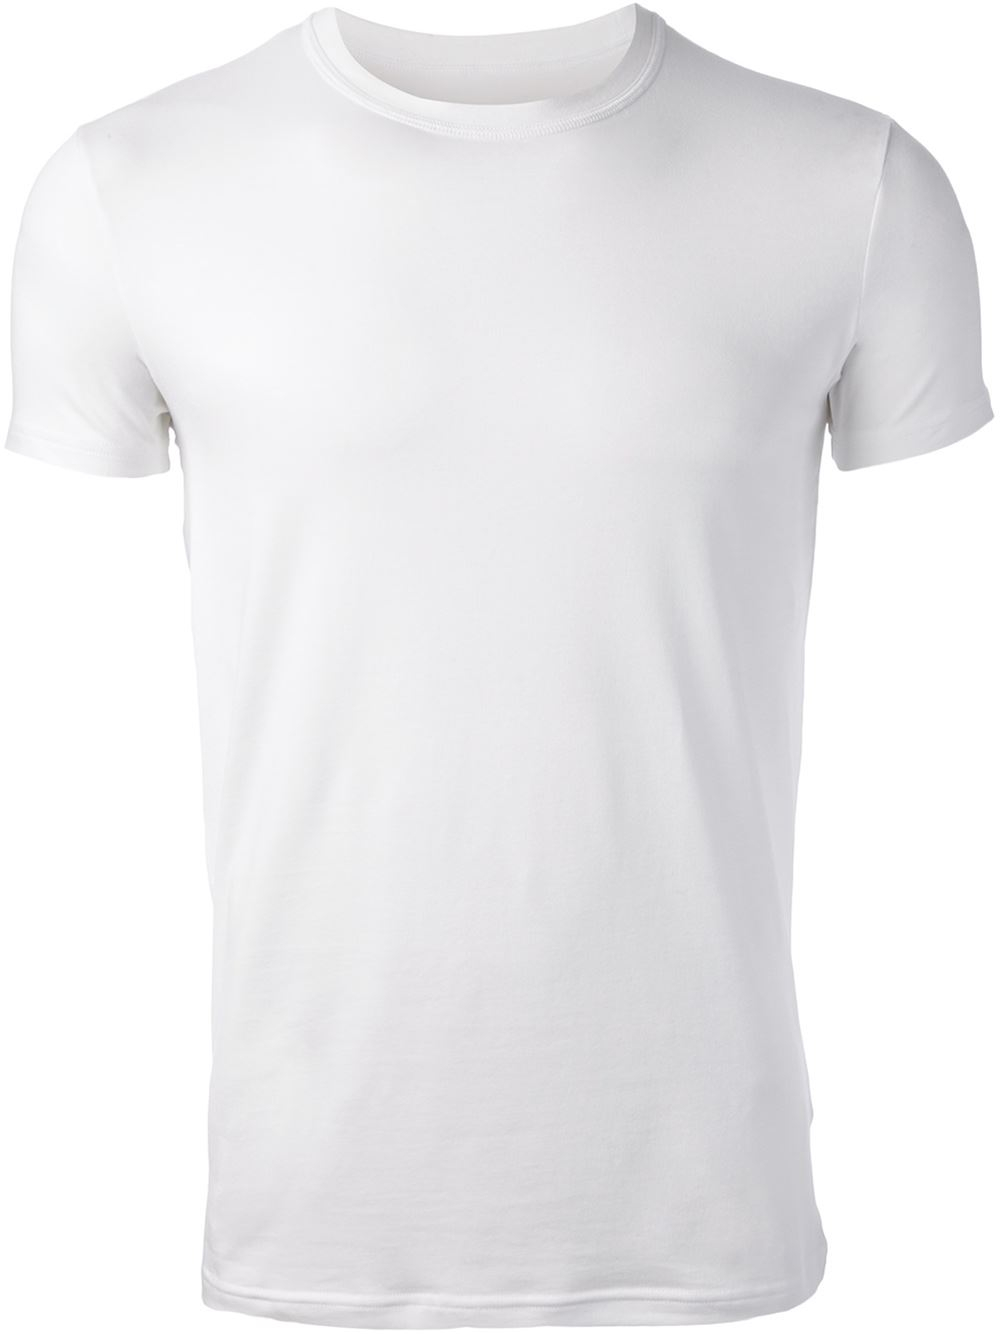 Dsquared crew neck t shirt in white for men lyst for Crew neck white t shirt